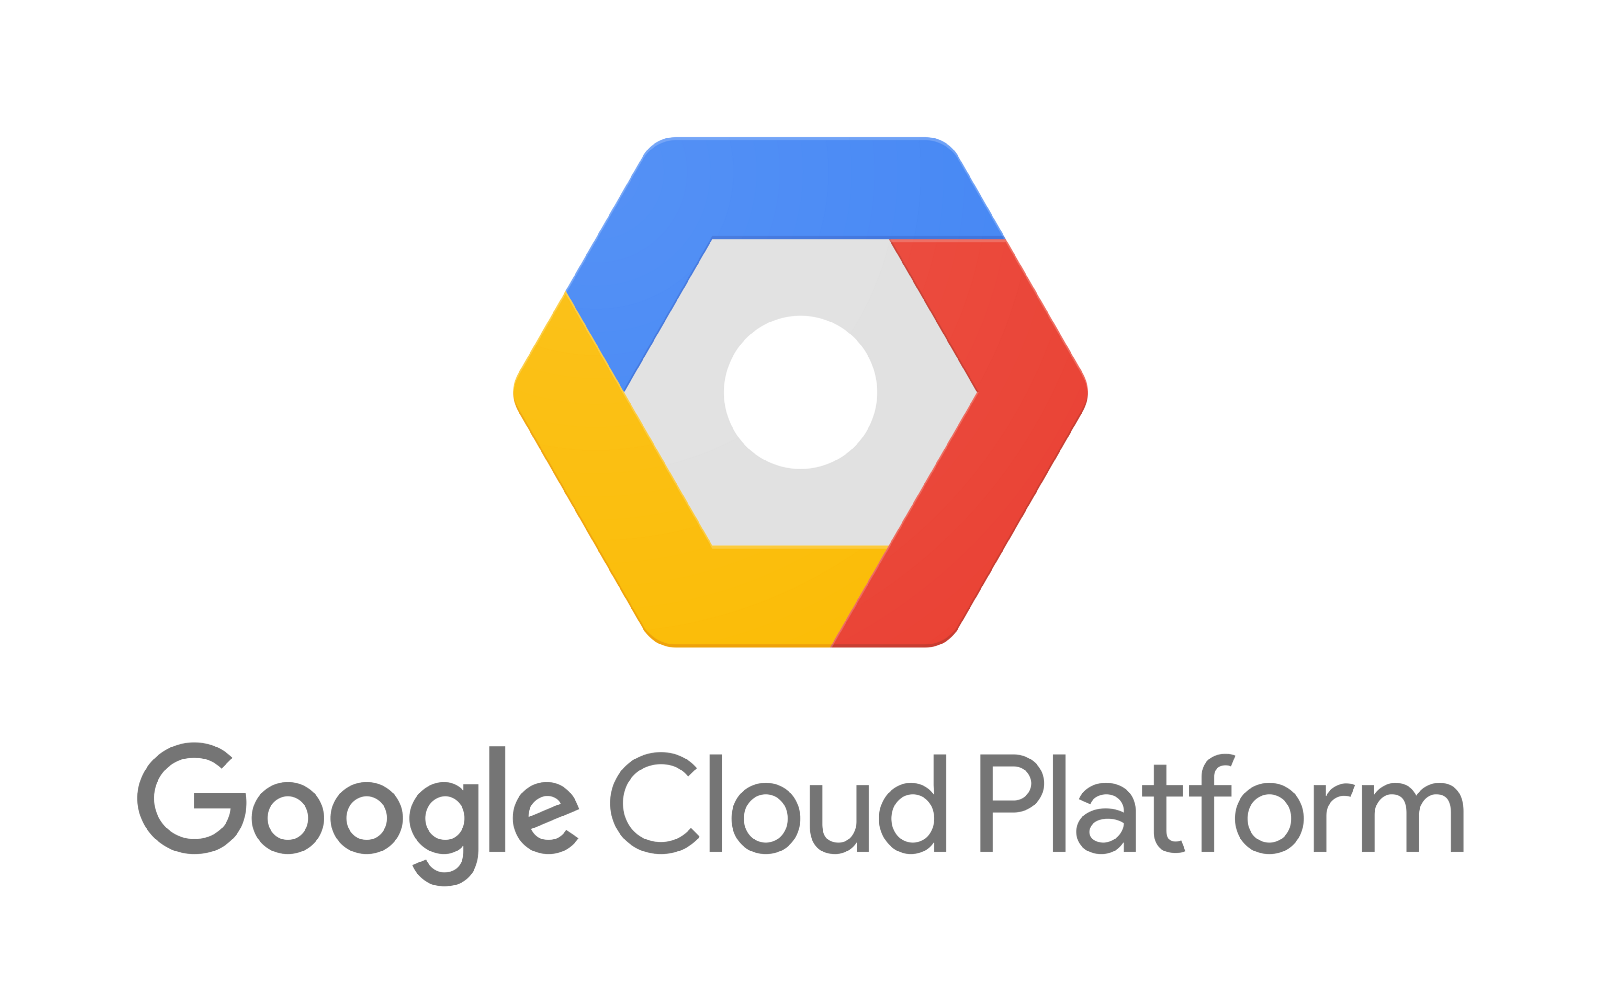 Data Engineering on Google Cloud Platform specialization at Coursera feature image